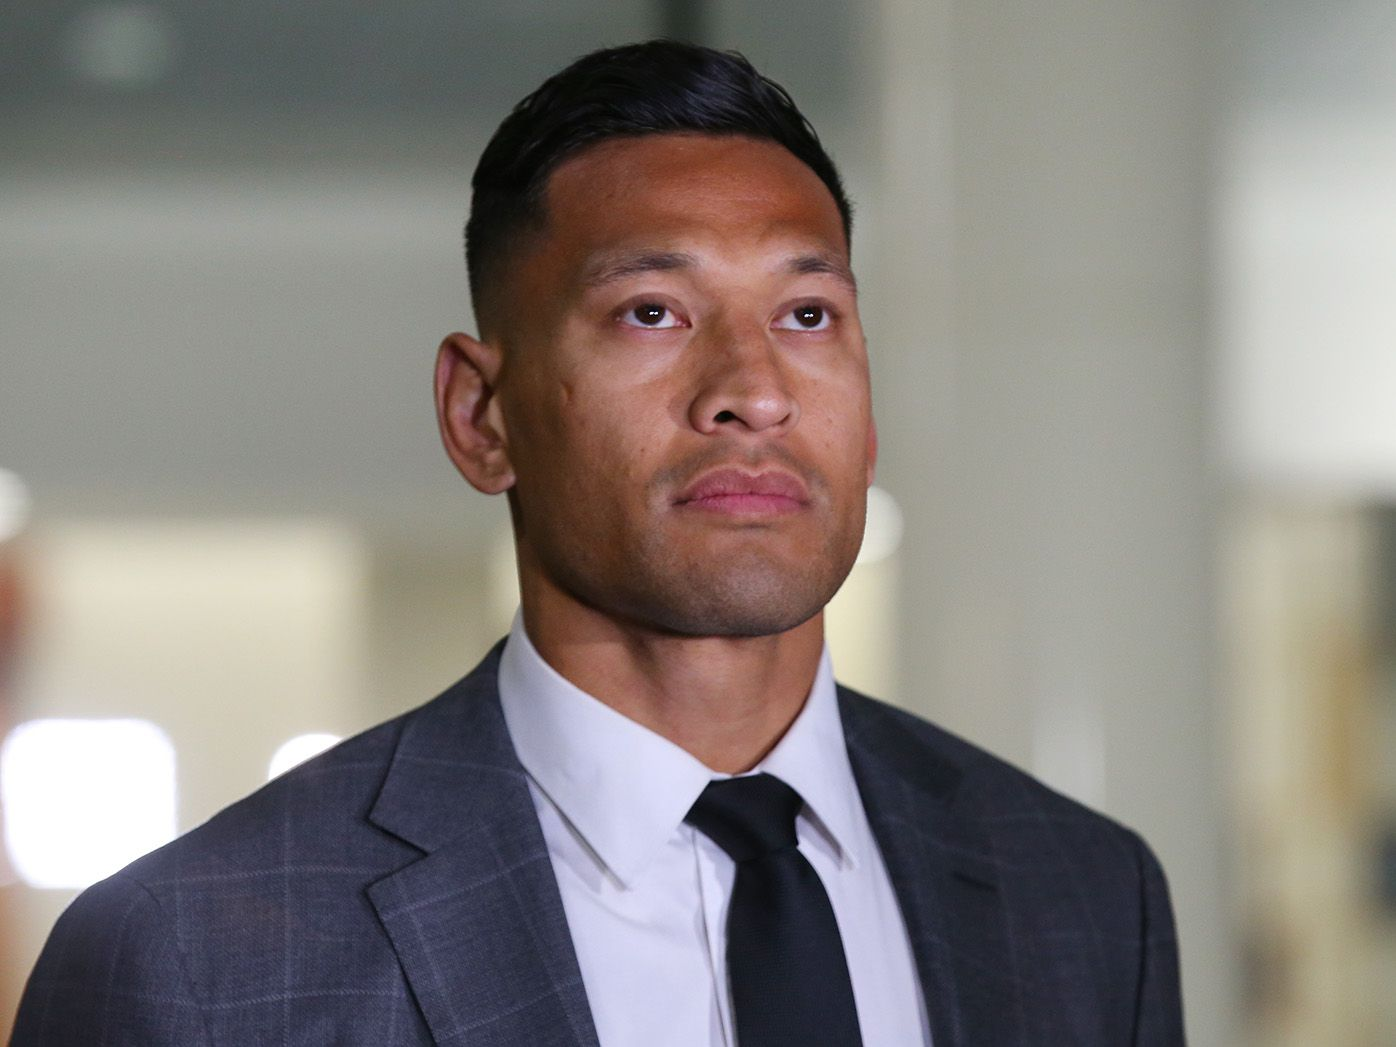 The Staggering Settlement Payout Israel Folau Agreed With Rugby Australia Has Leaked